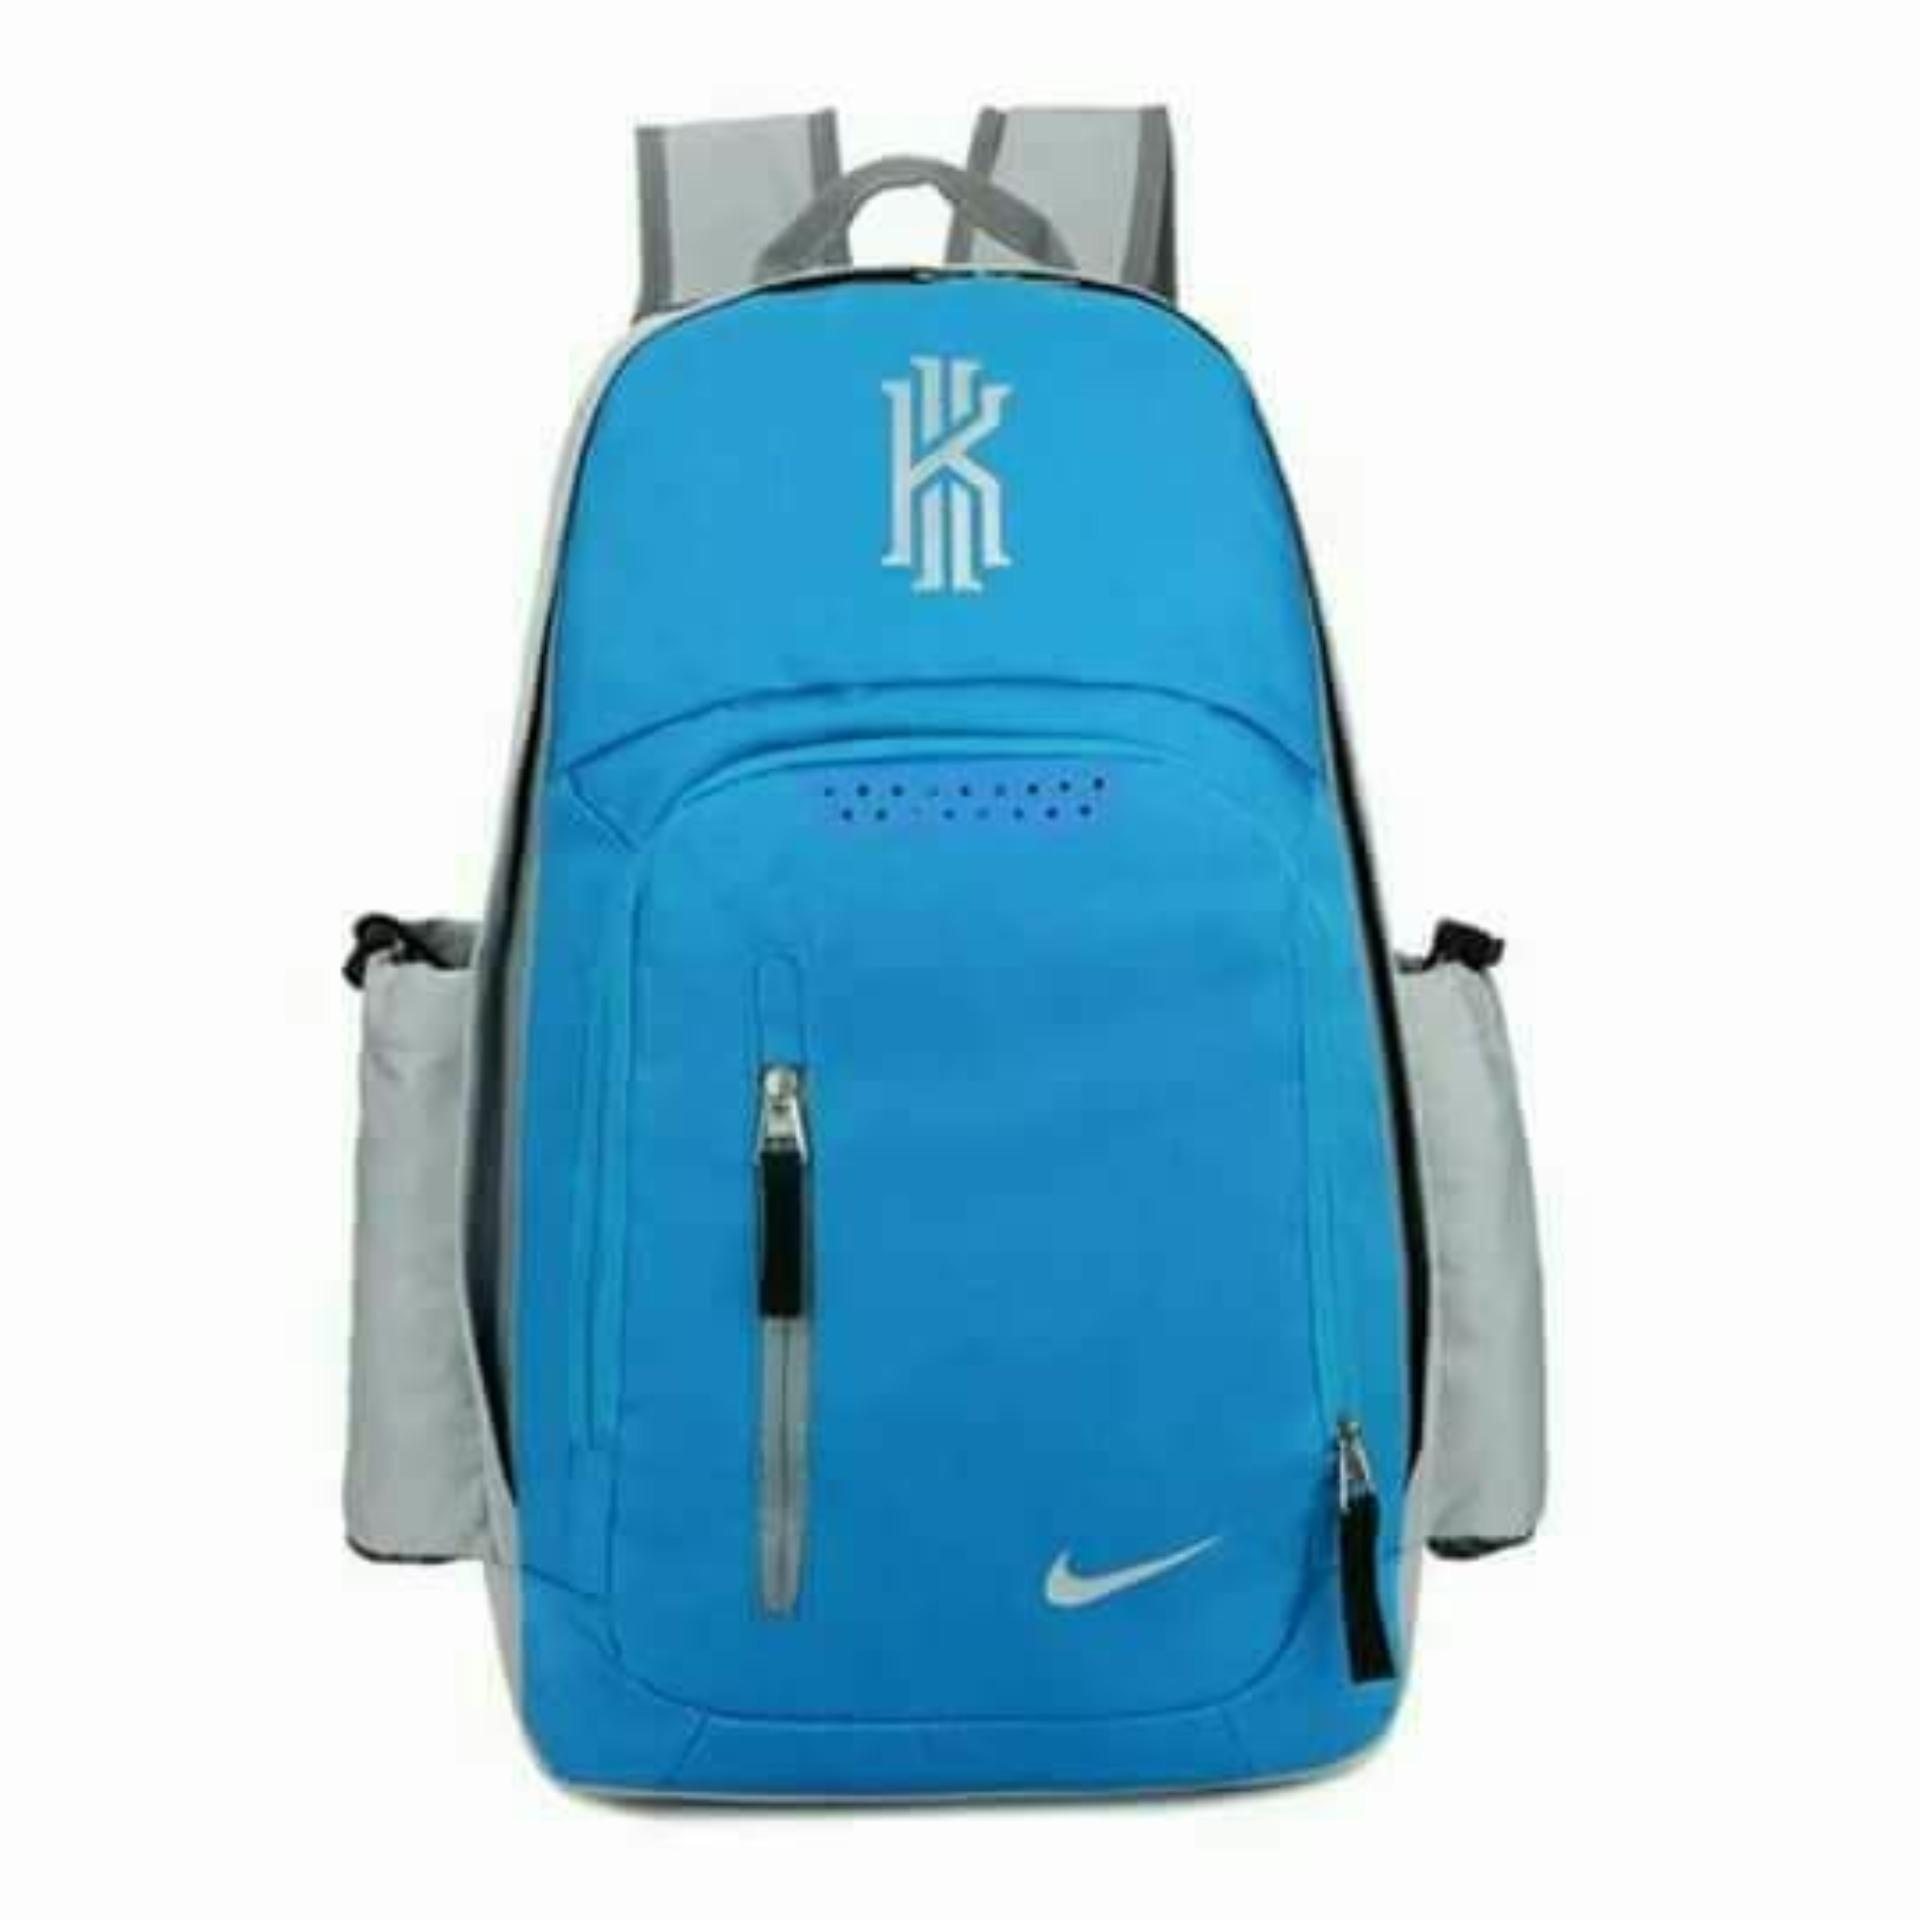 Nike Sport Backpack Philippines   ReGreen Springfield d4d12bfe68